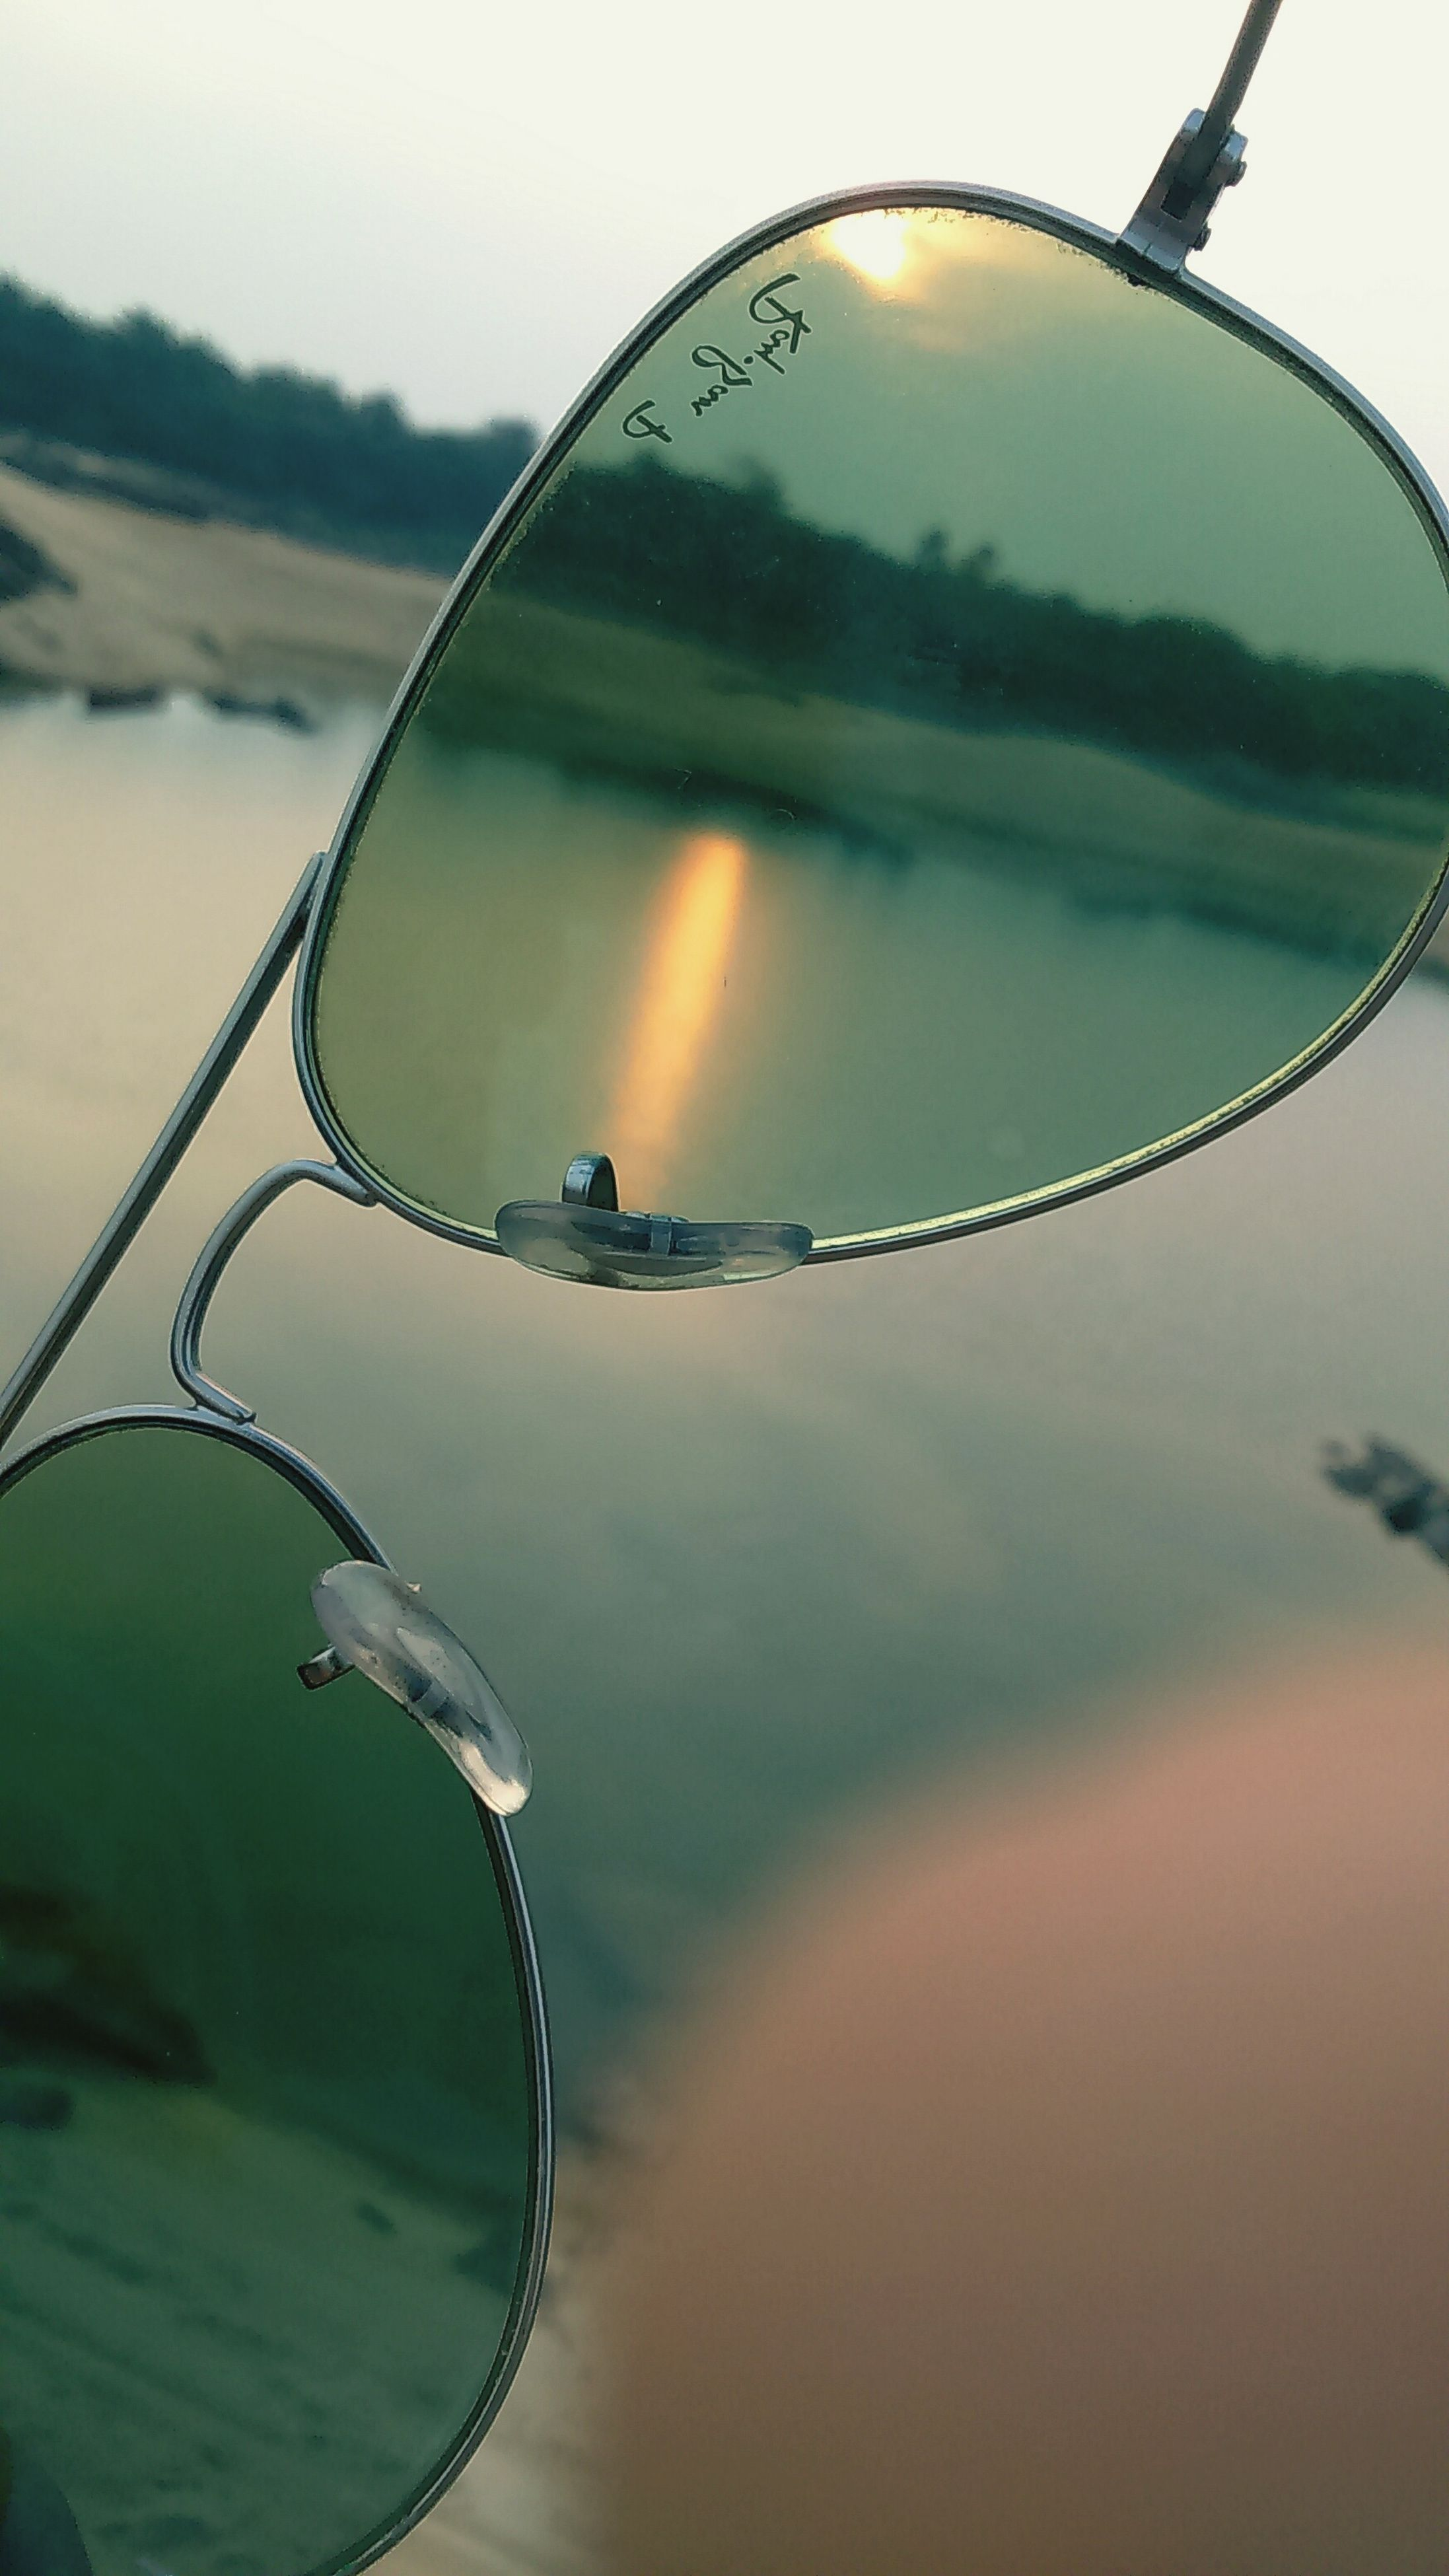 focus on foreground, close-up, circle, reflection, mid-air, sky, nature, sunset, transportation, sport, beauty in nature, sphere, tranquility, outdoors, water, part of, no people, landscape, day, selective focus